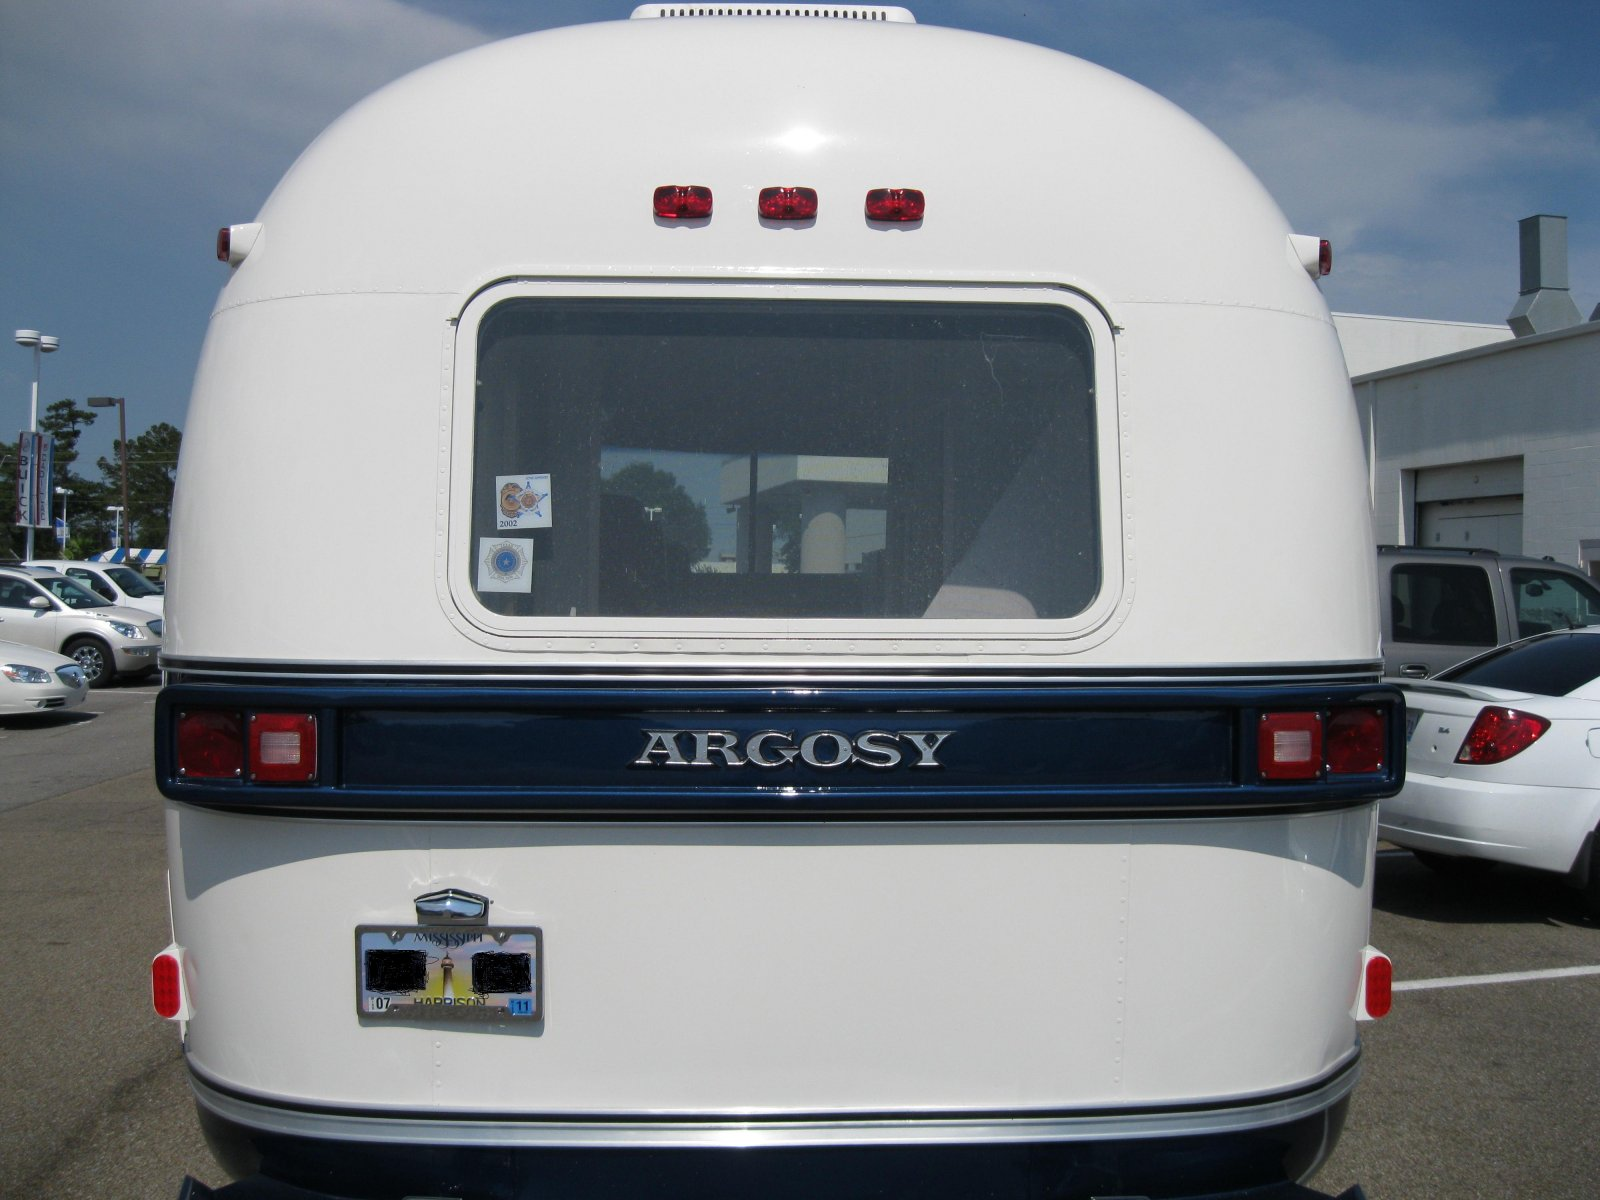 Click image for larger version  Name:'75 Argosy Motorhome 093.jpg Views:183 Size:209.5 KB ID:132621